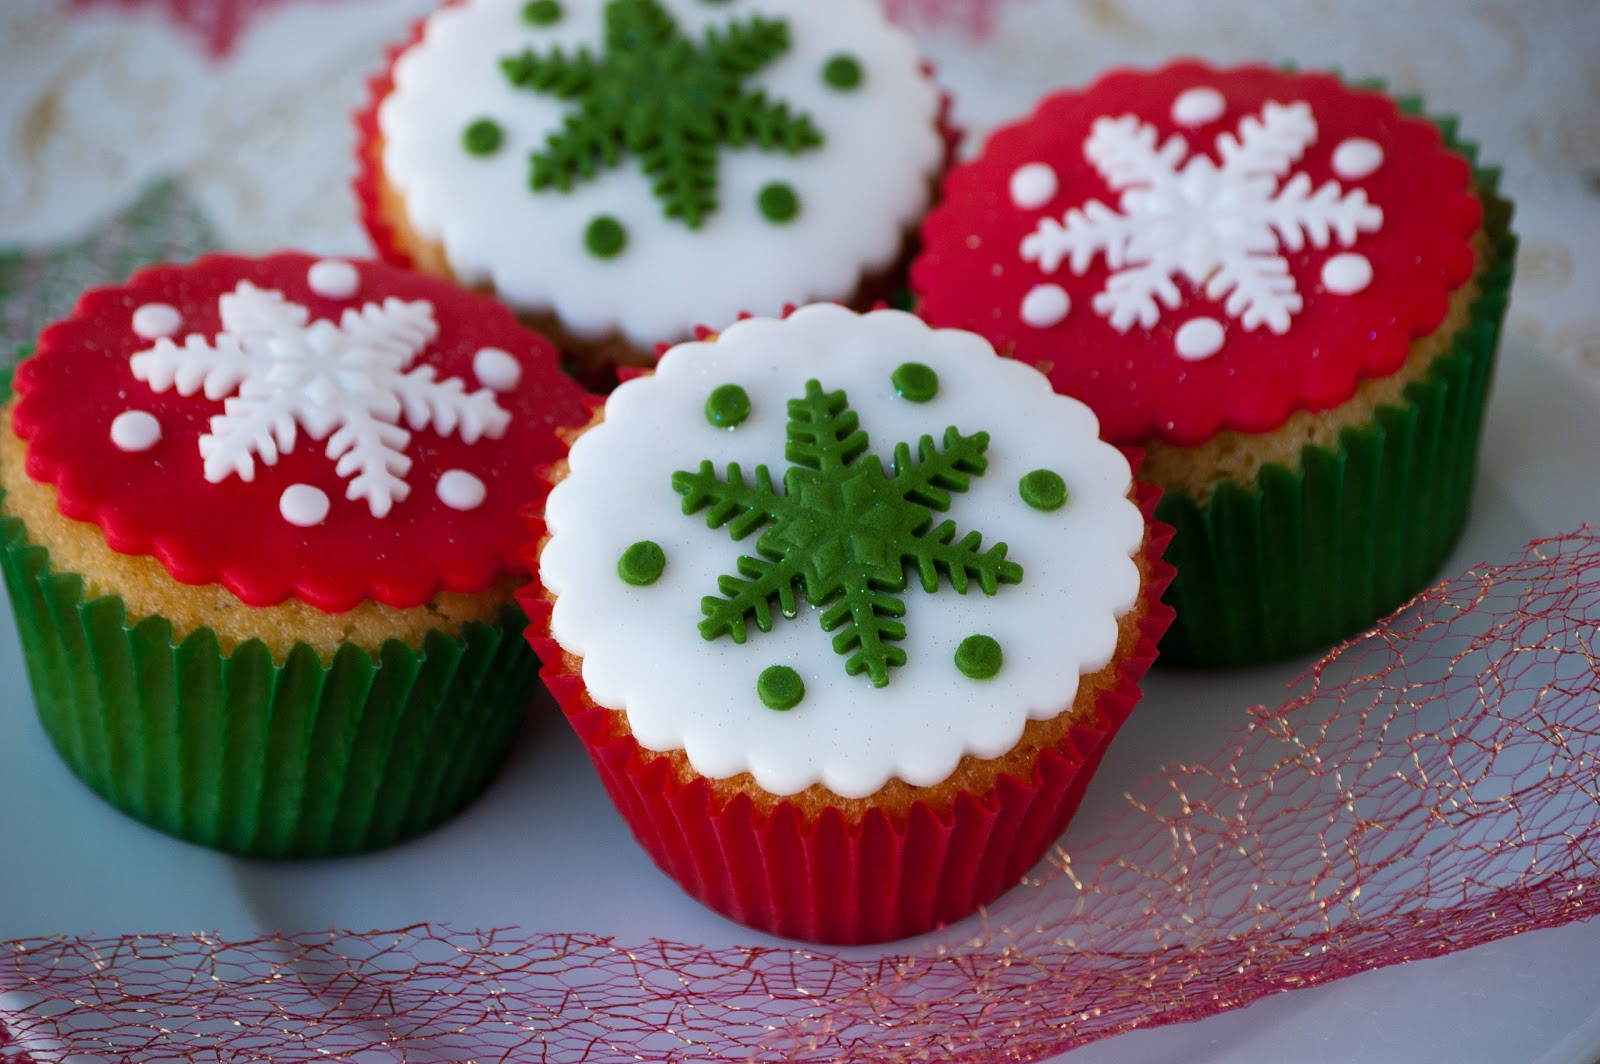 Christmas Cupcakes Images  Cupcakes Are My New Love Christmas Cupcakes